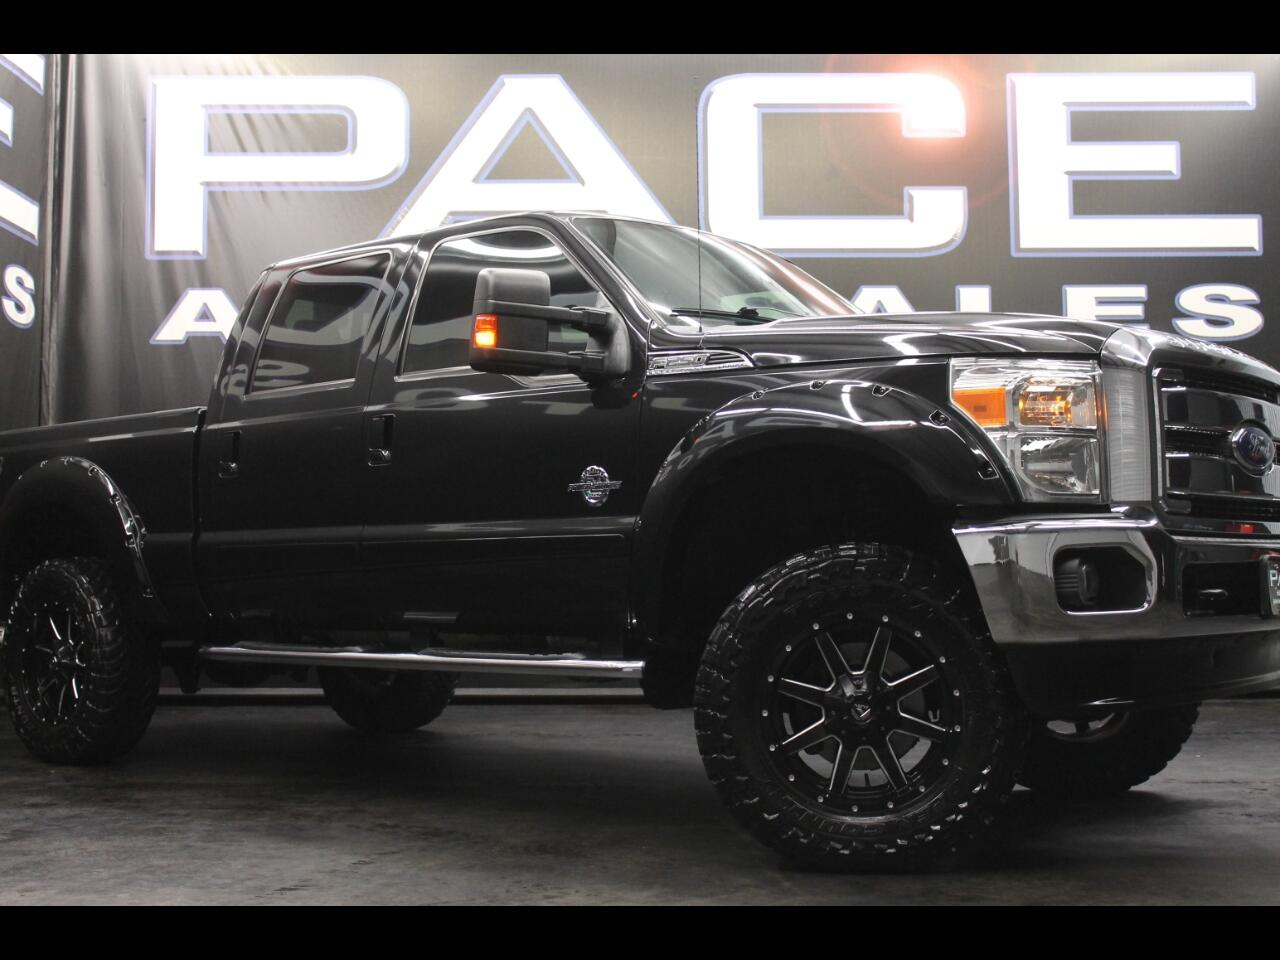 2013 Ford Super Duty F-250 SRW Lariat Crew Cab FX4 Lifted Custom